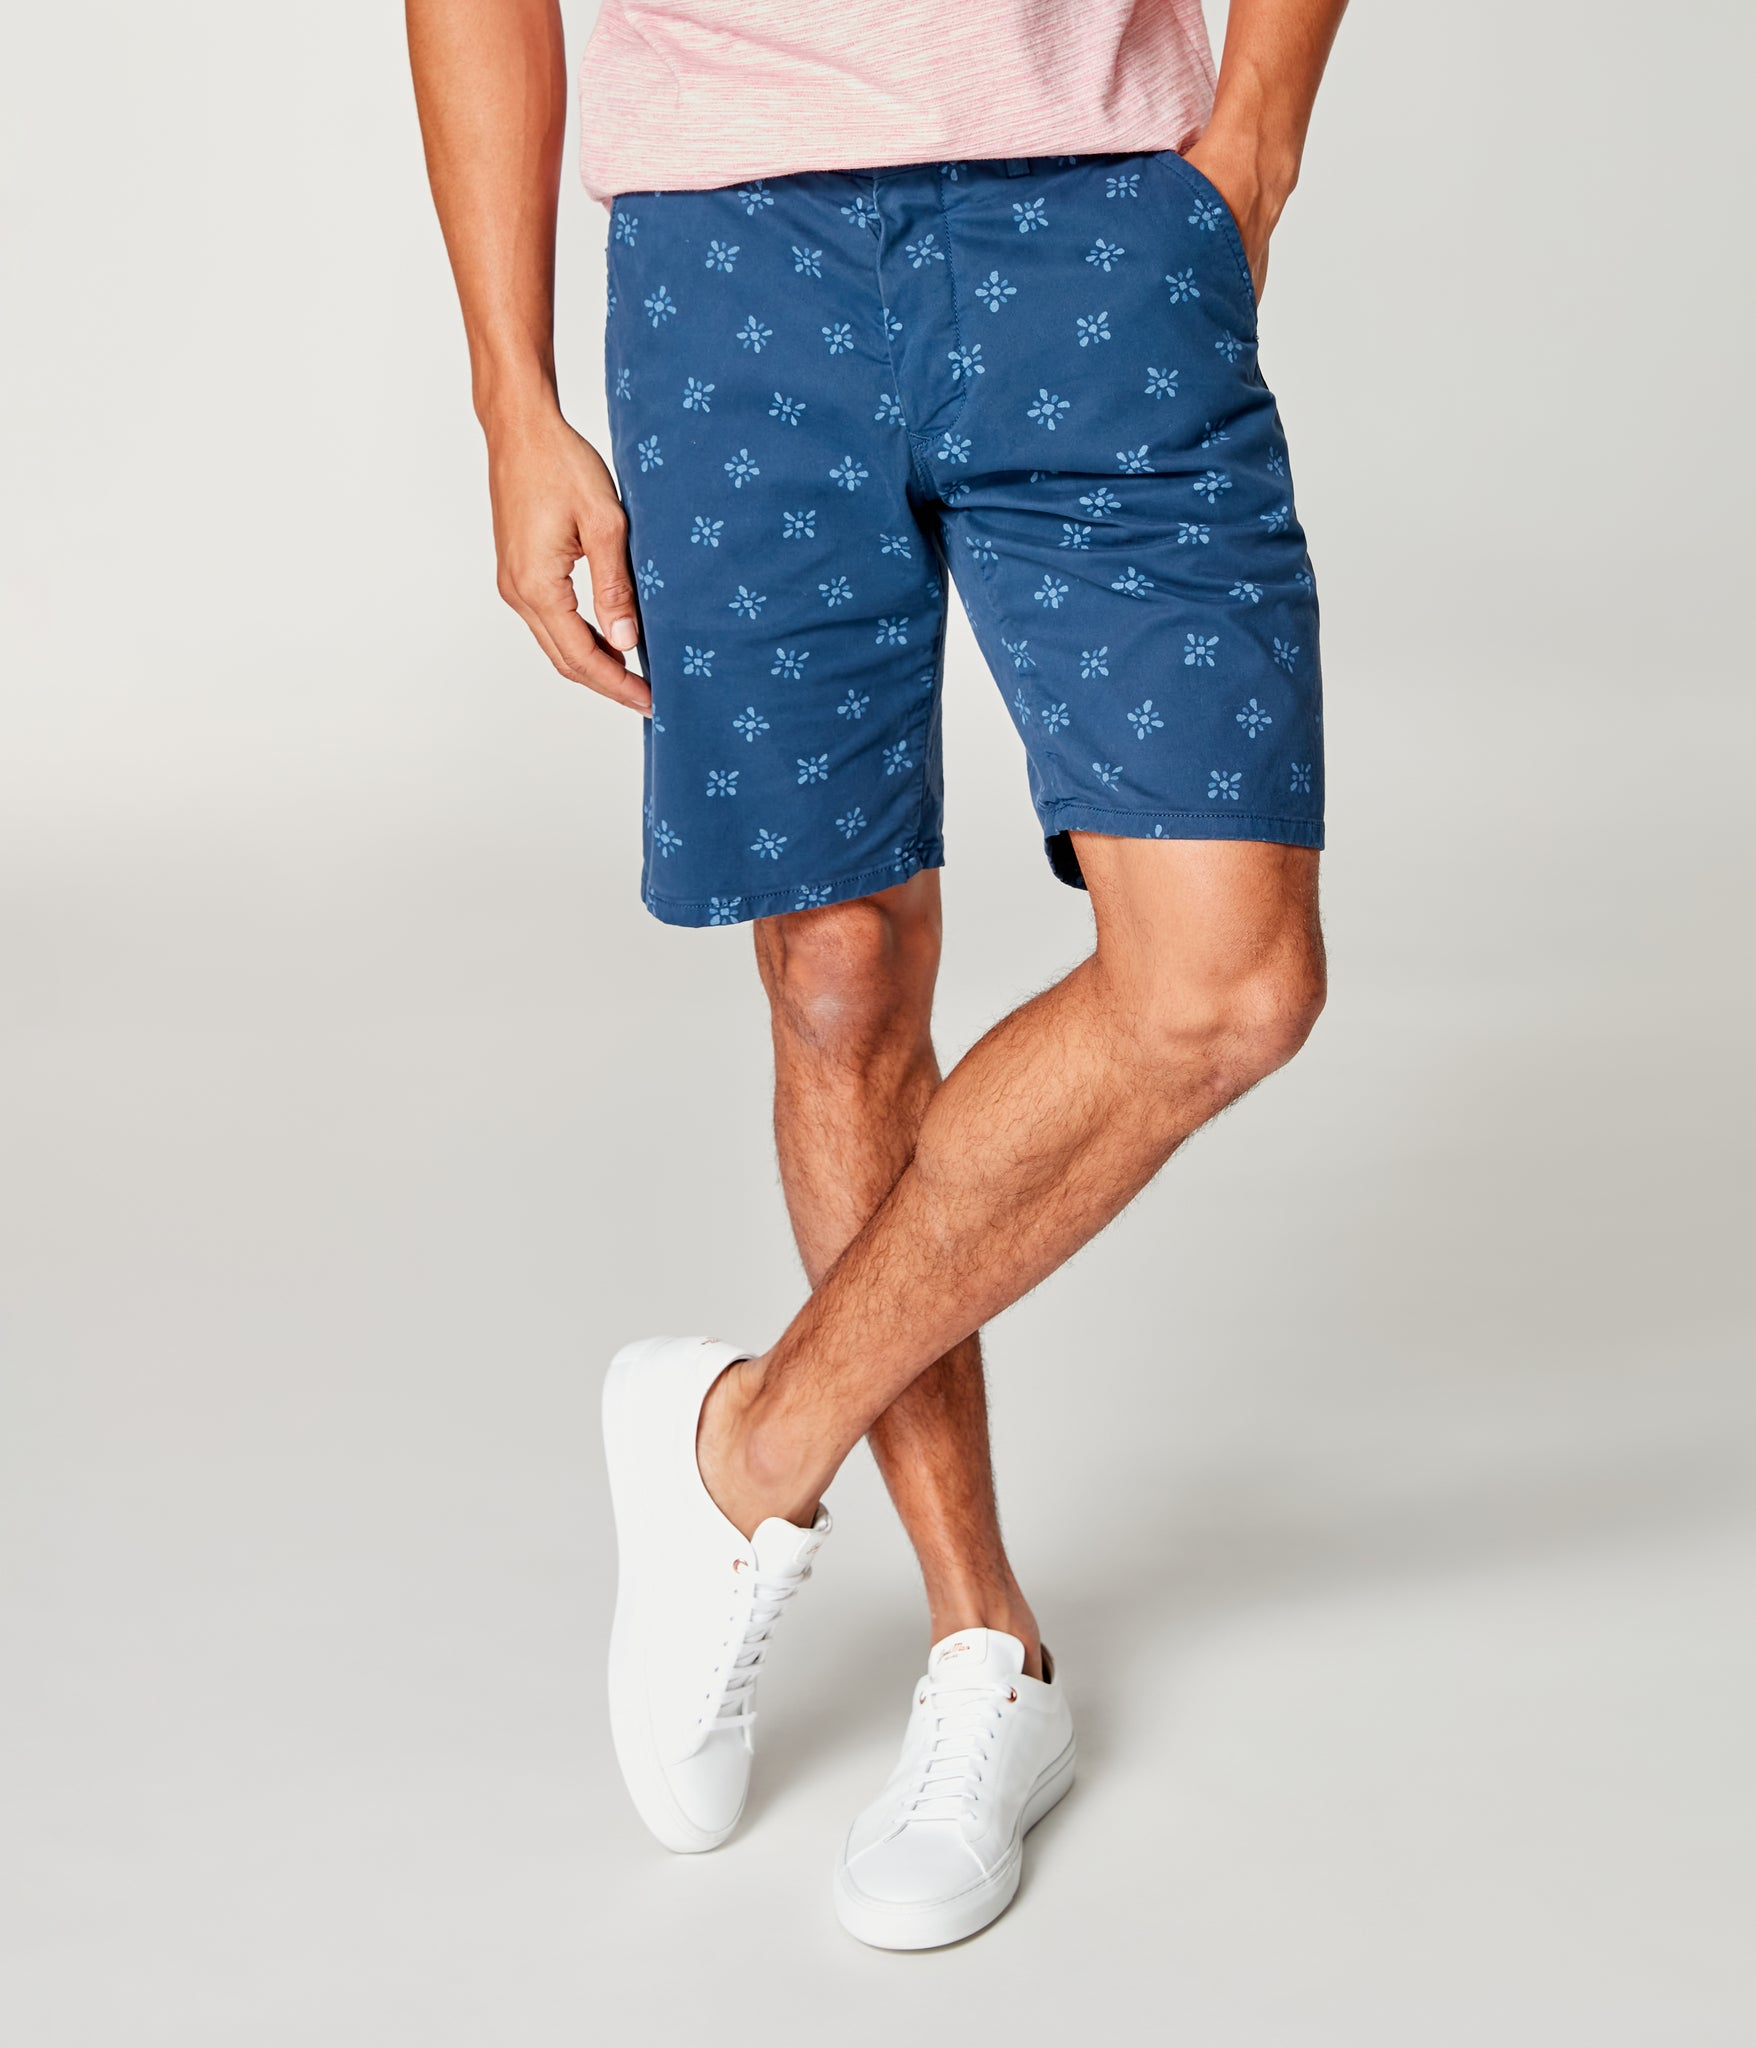 Monaco Stretch Twill Floral Wrap Short - Denim Blue